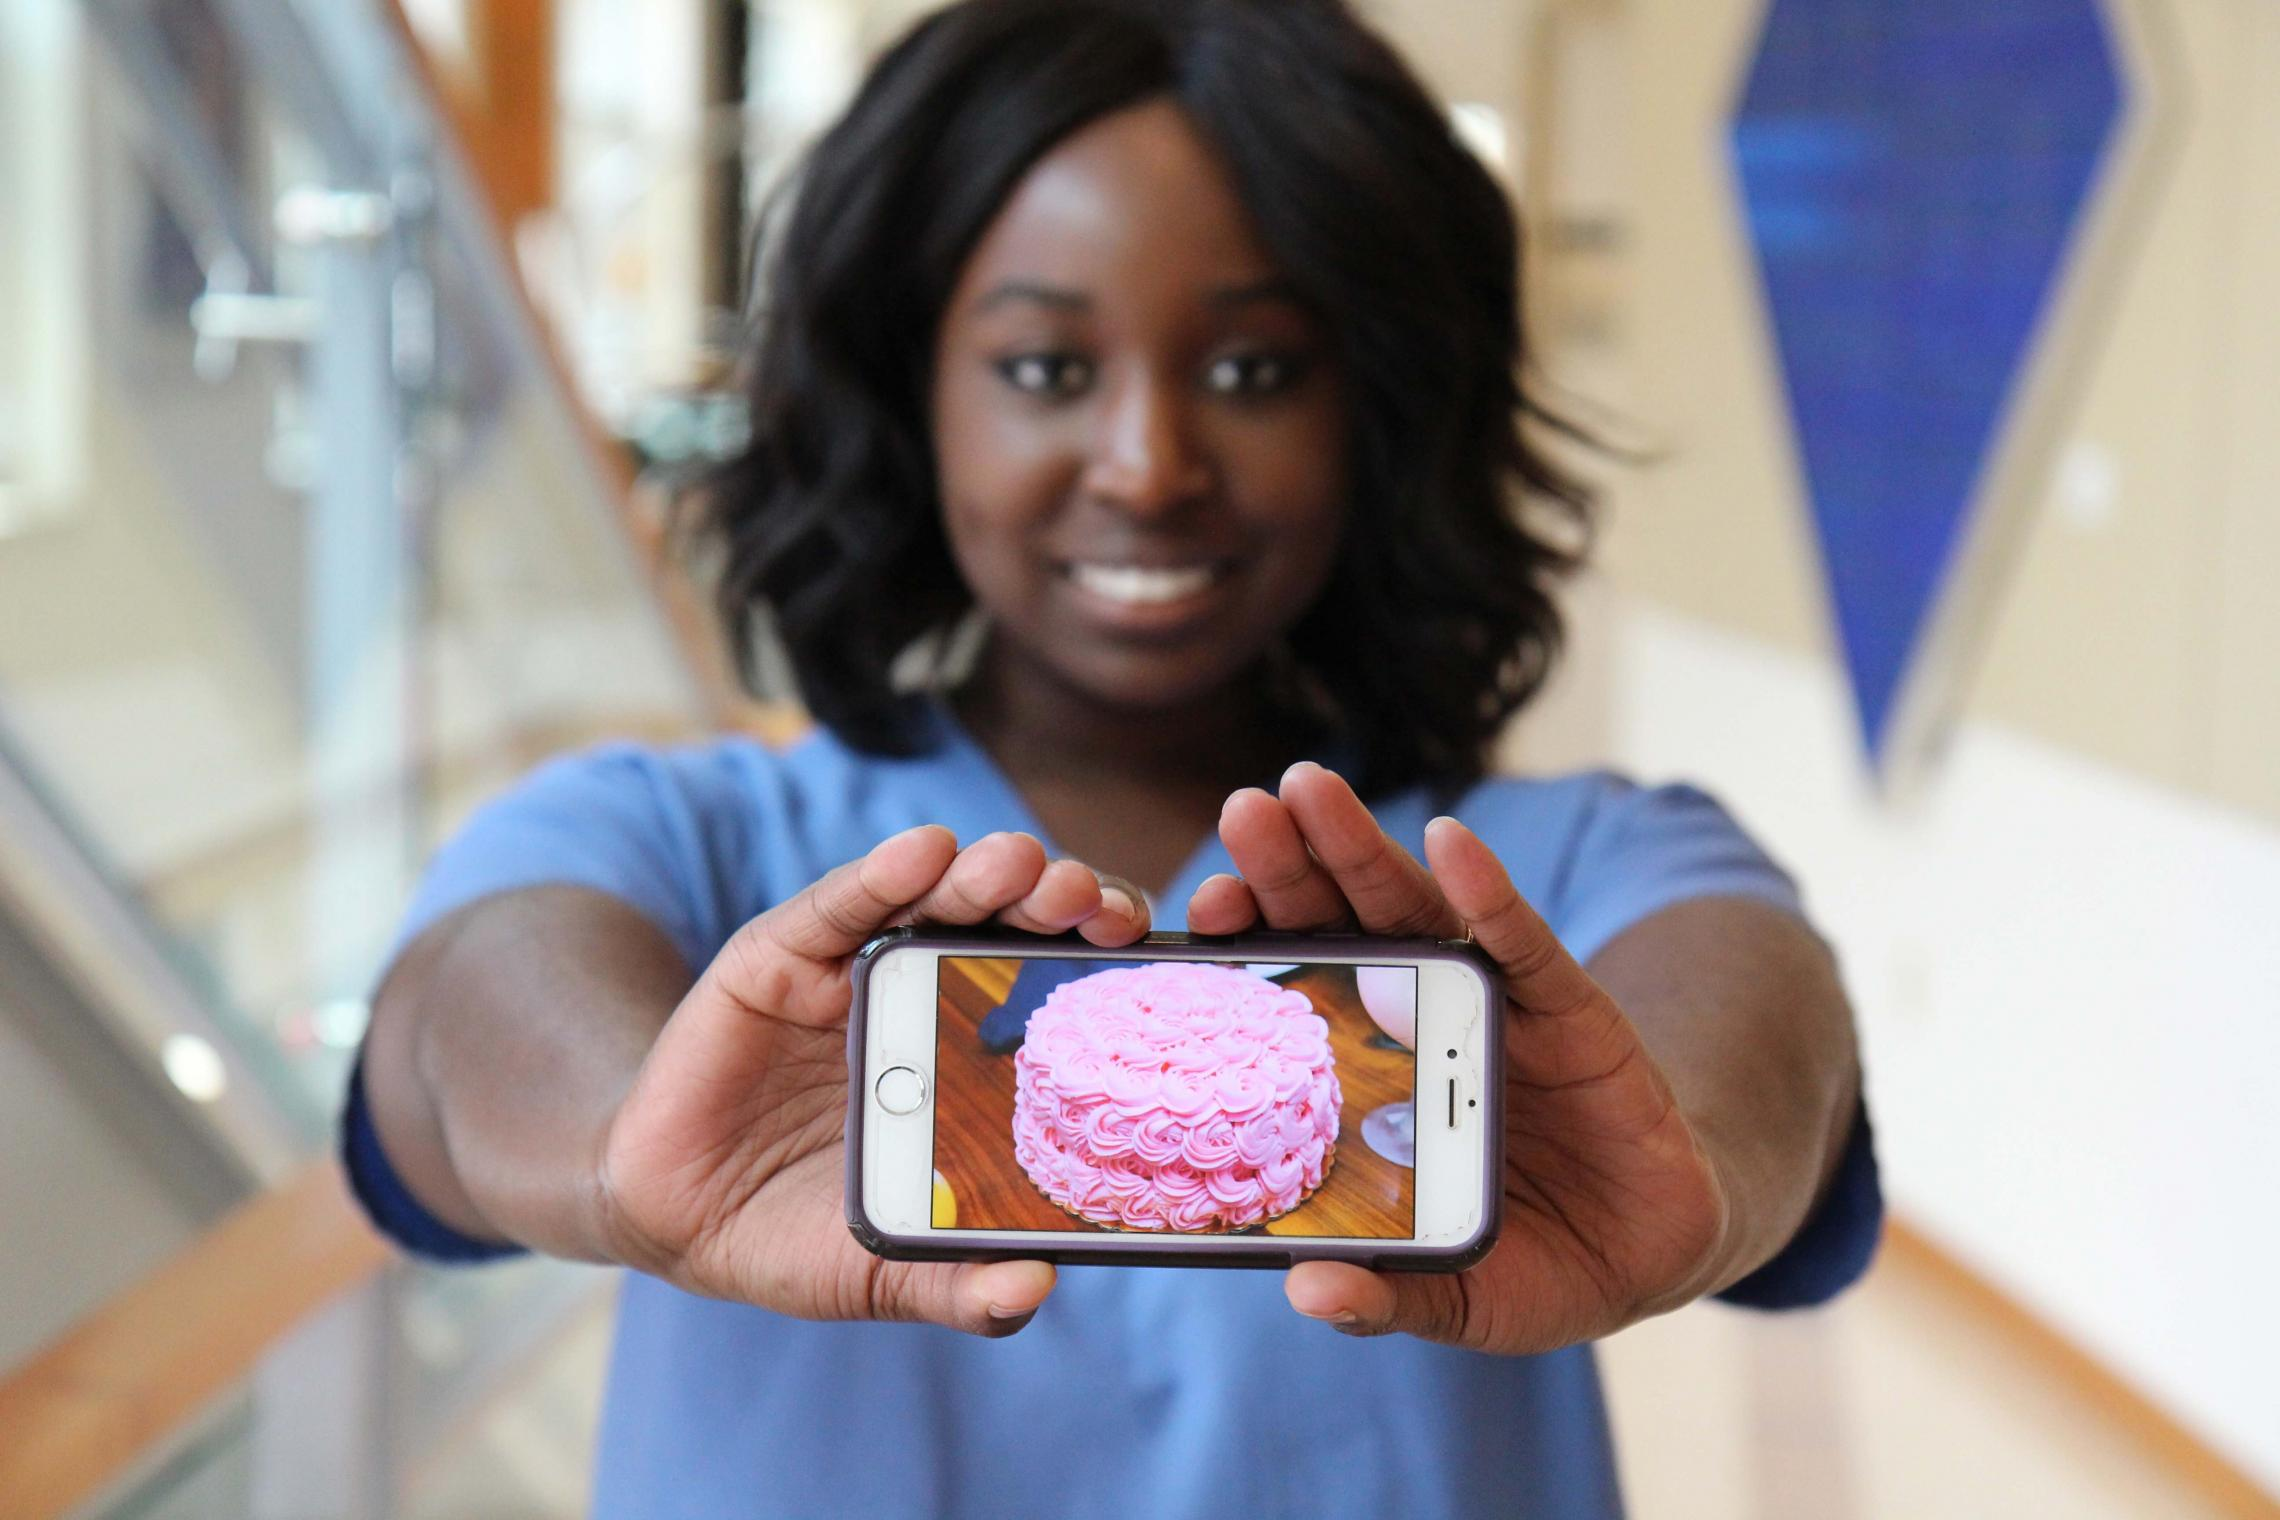 Michelle Bonsu displays one of her confectionary creations. She earned degrees psychology and anthropology from the College of Arts and Sciences in 2015.